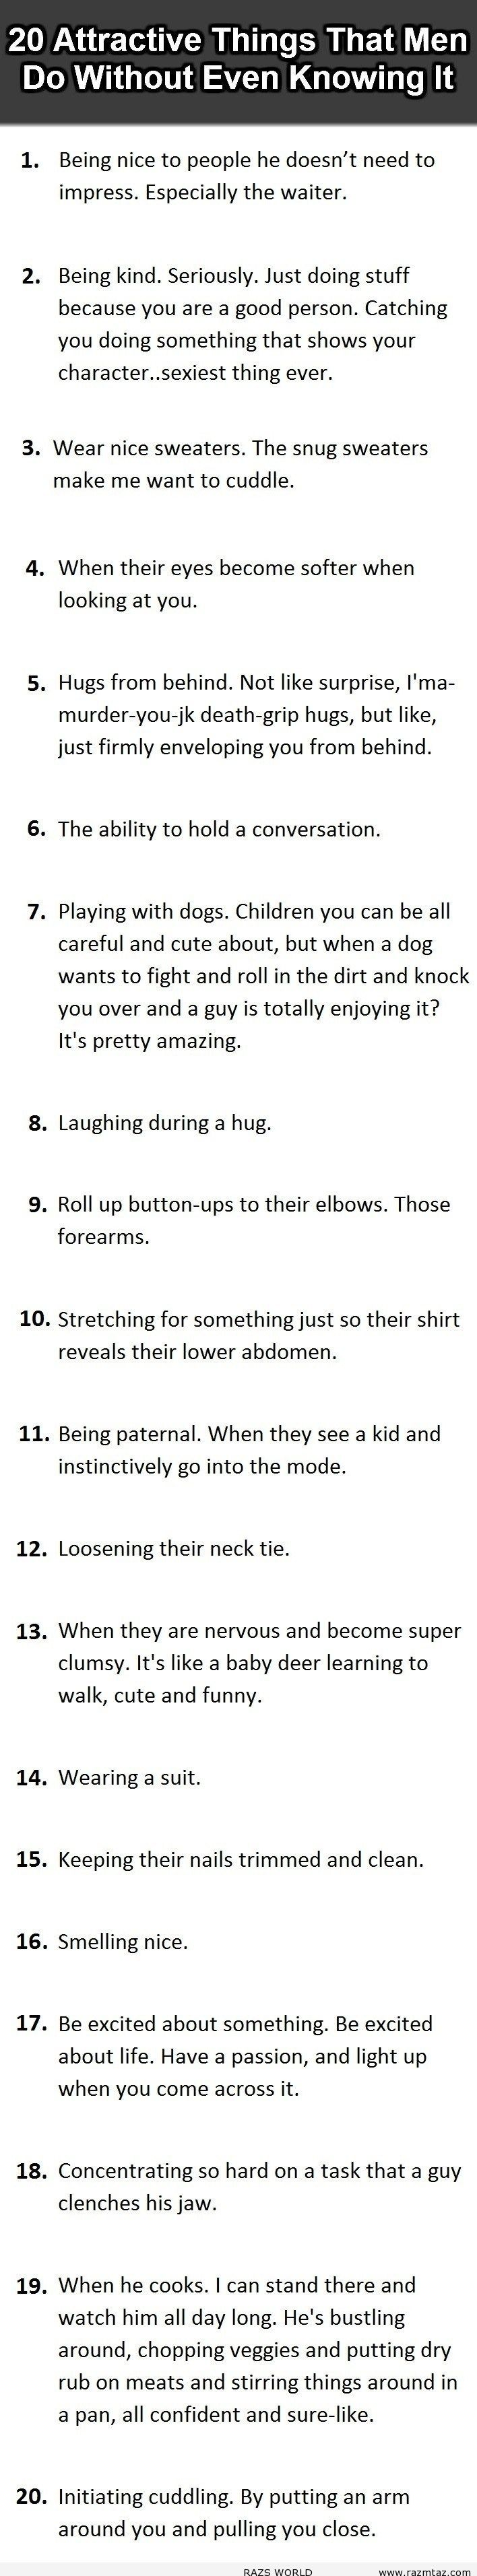 20 ATTRACTIVE THINGS THAT MAN DO WITHOUT EVER KNOWING IT ... - http://www.razmtaz.com/20-attractive-things-that-man-do-without-ever-knowing-it/